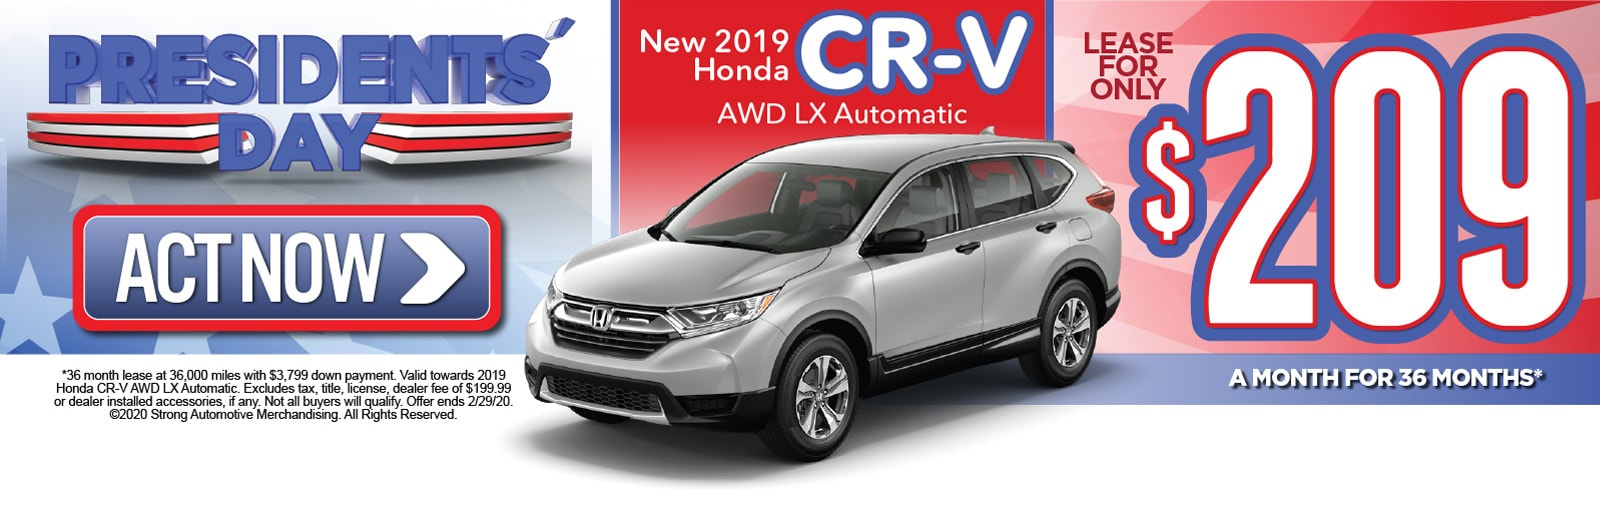 2019 Honda CR-V in St. Louis, MO